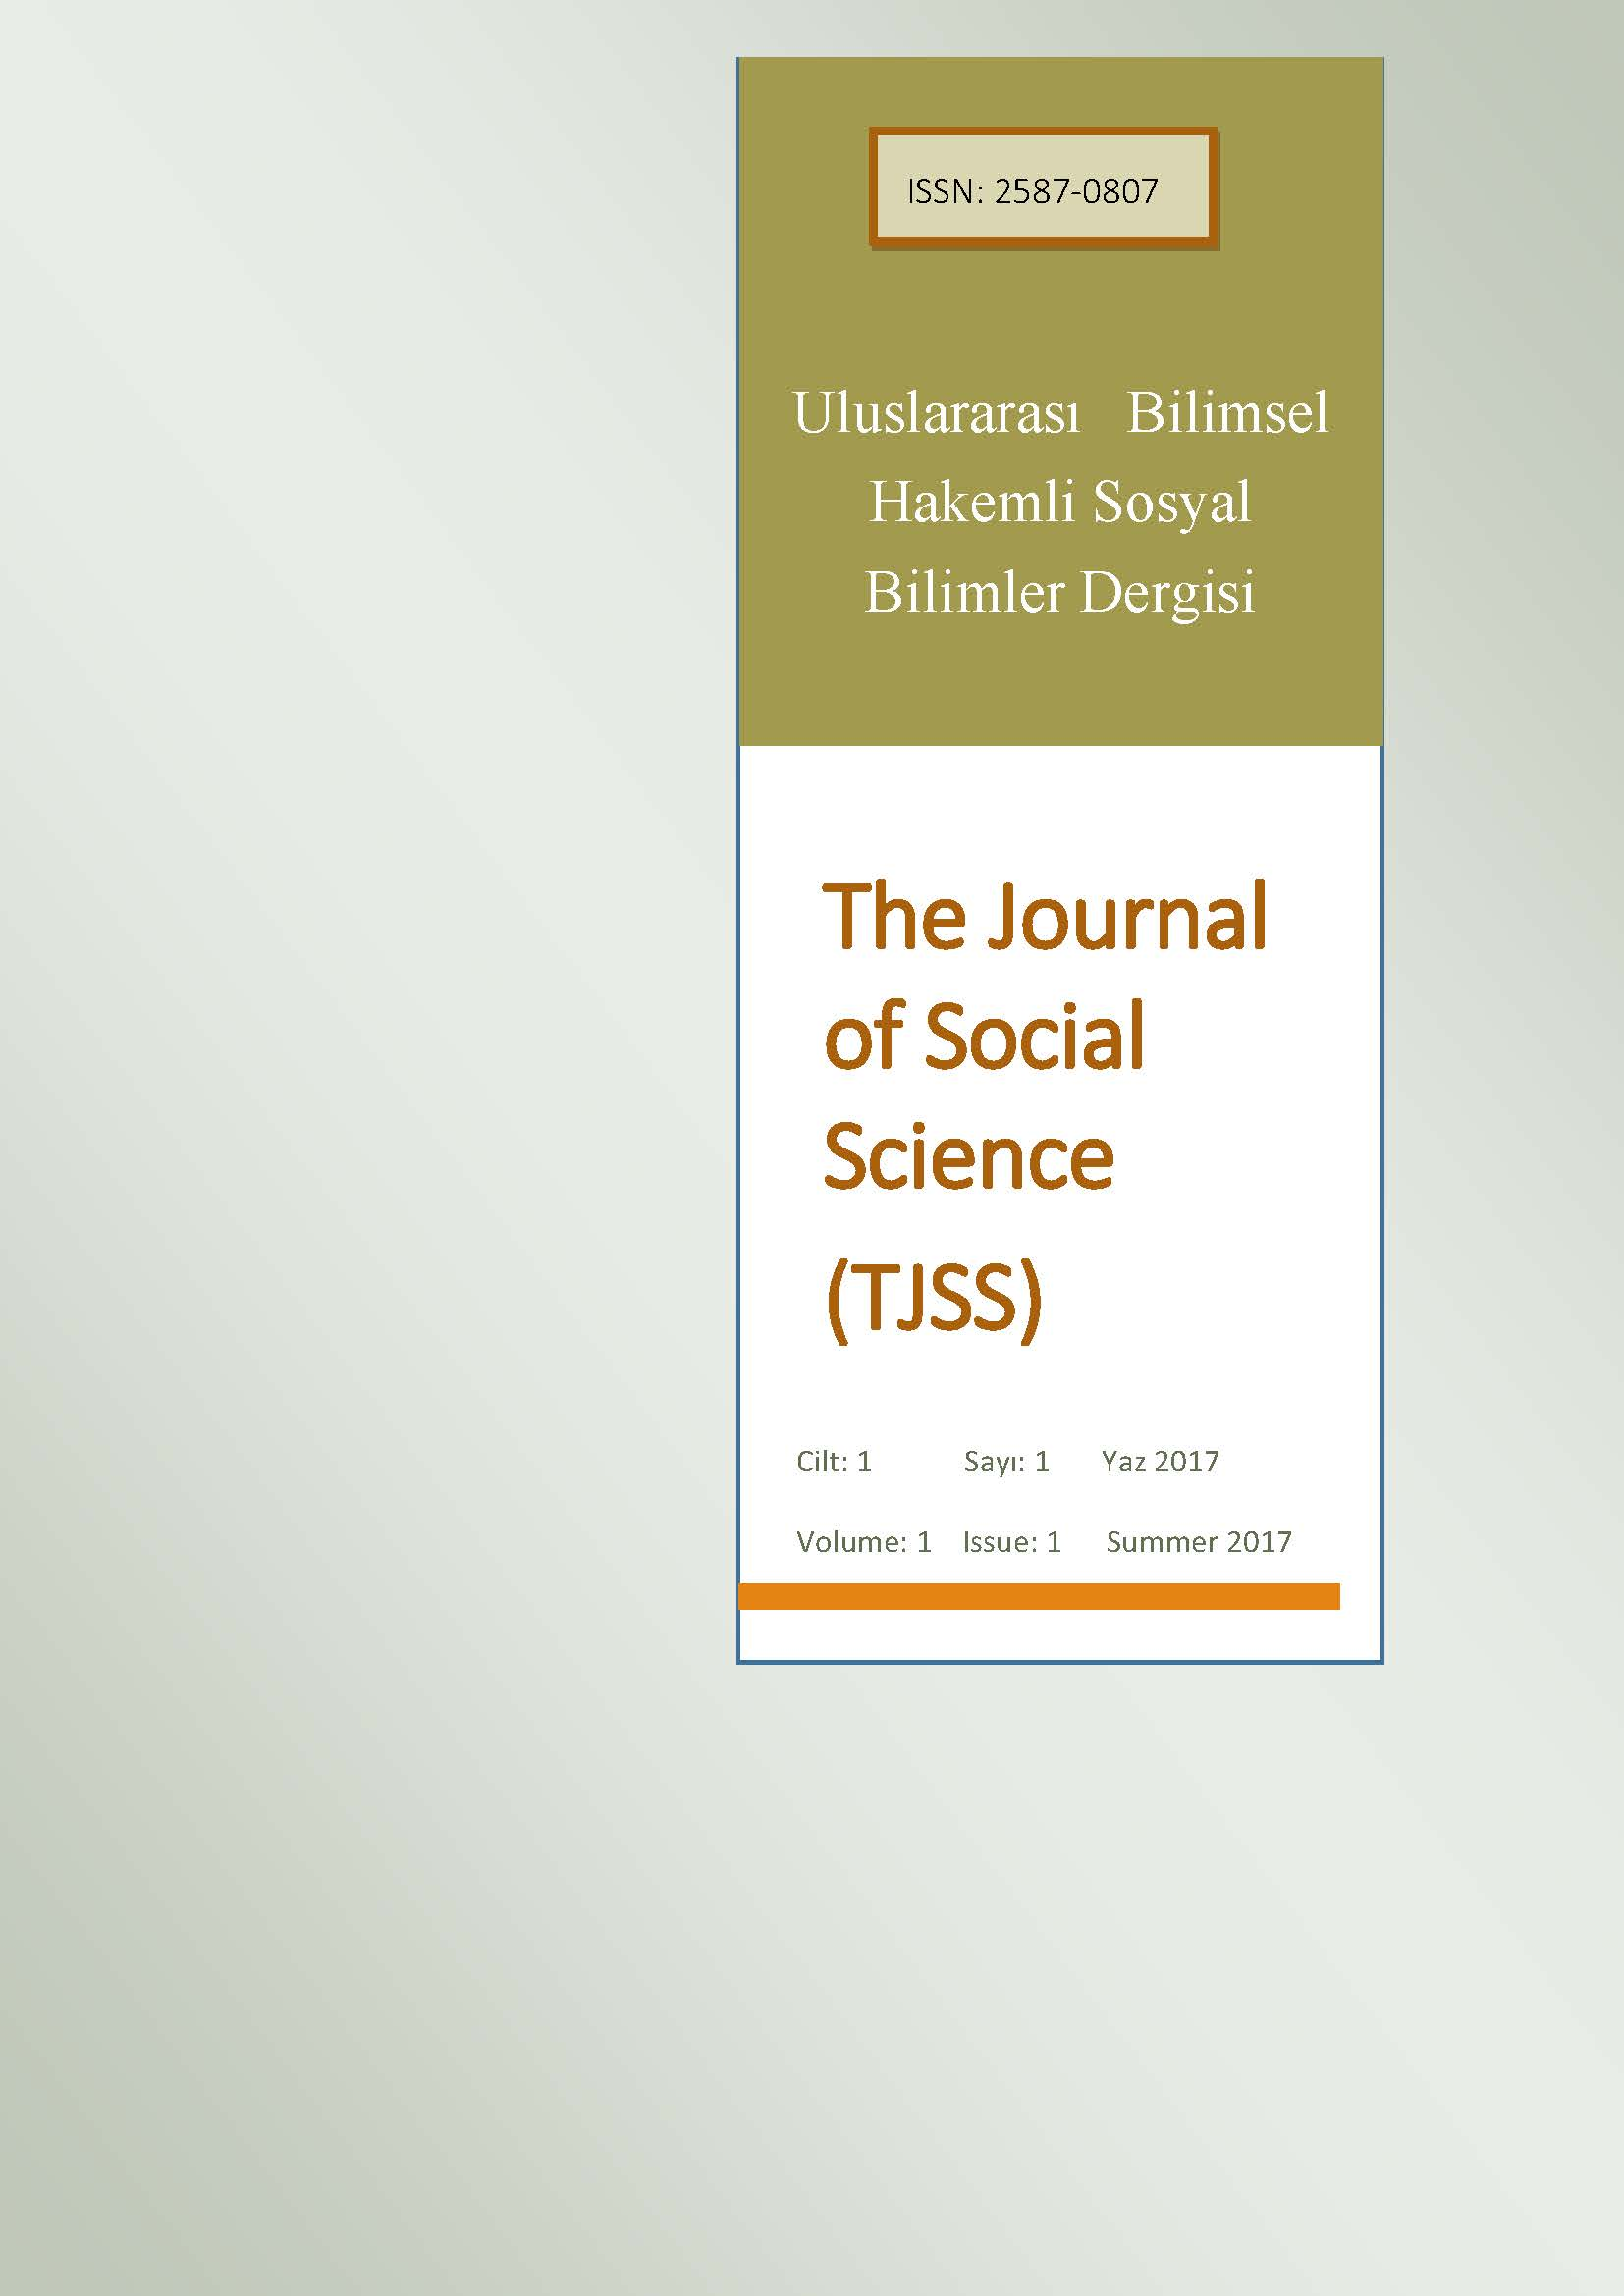 The Journal of Social Science Cover Image